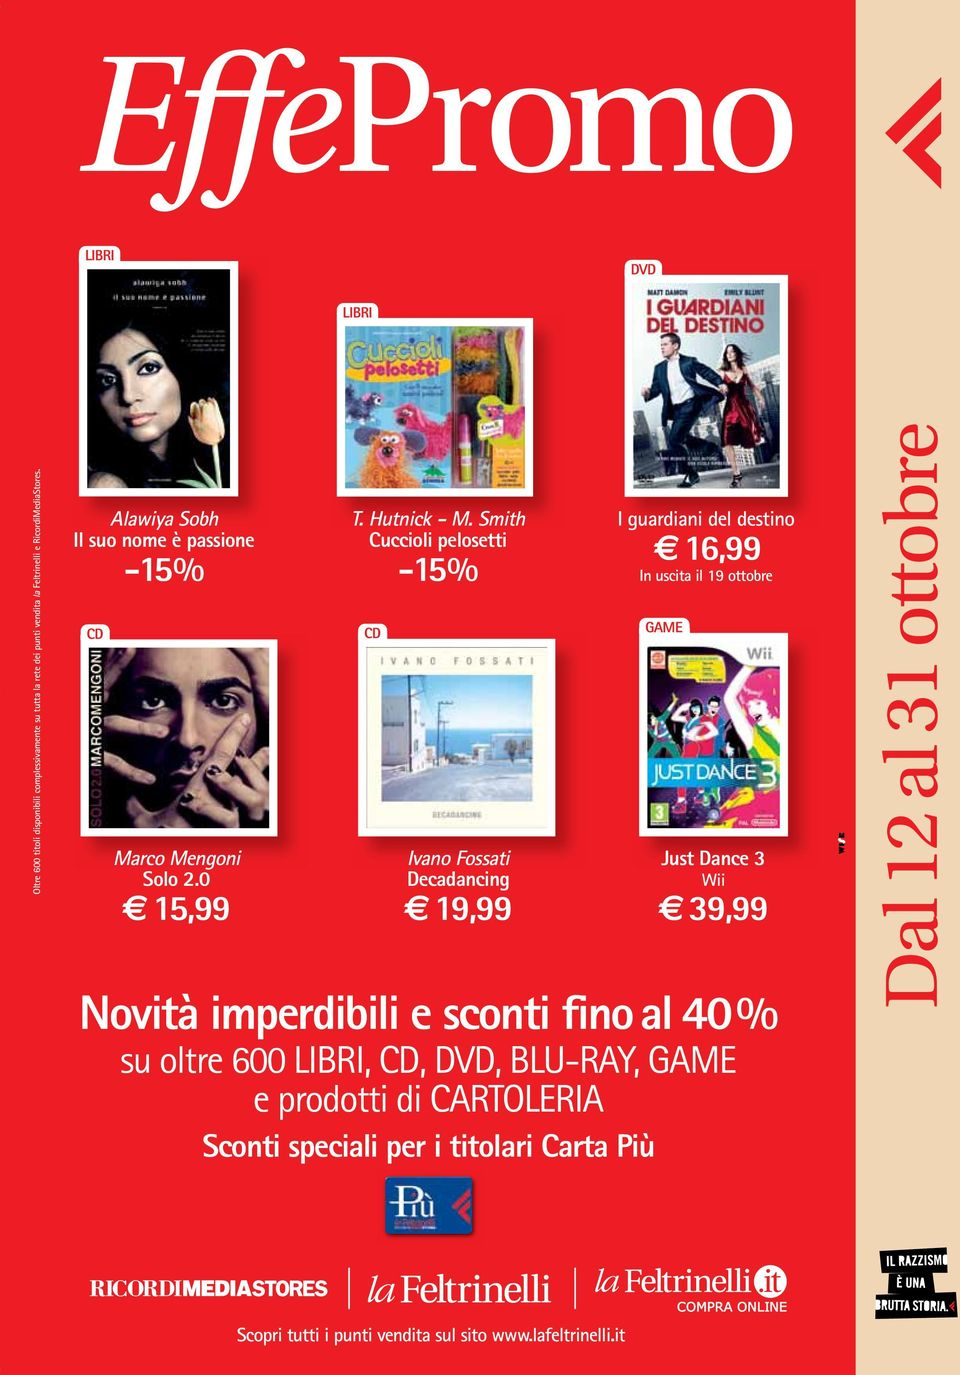 Smith Cuccioli pelosetti -15% CD Ivano Fossati Decadancing 19,99 I guardiani del destino 16,99 In uscita il 19 ottobre GAME Just Dance 3 Wii 39,99 Novità